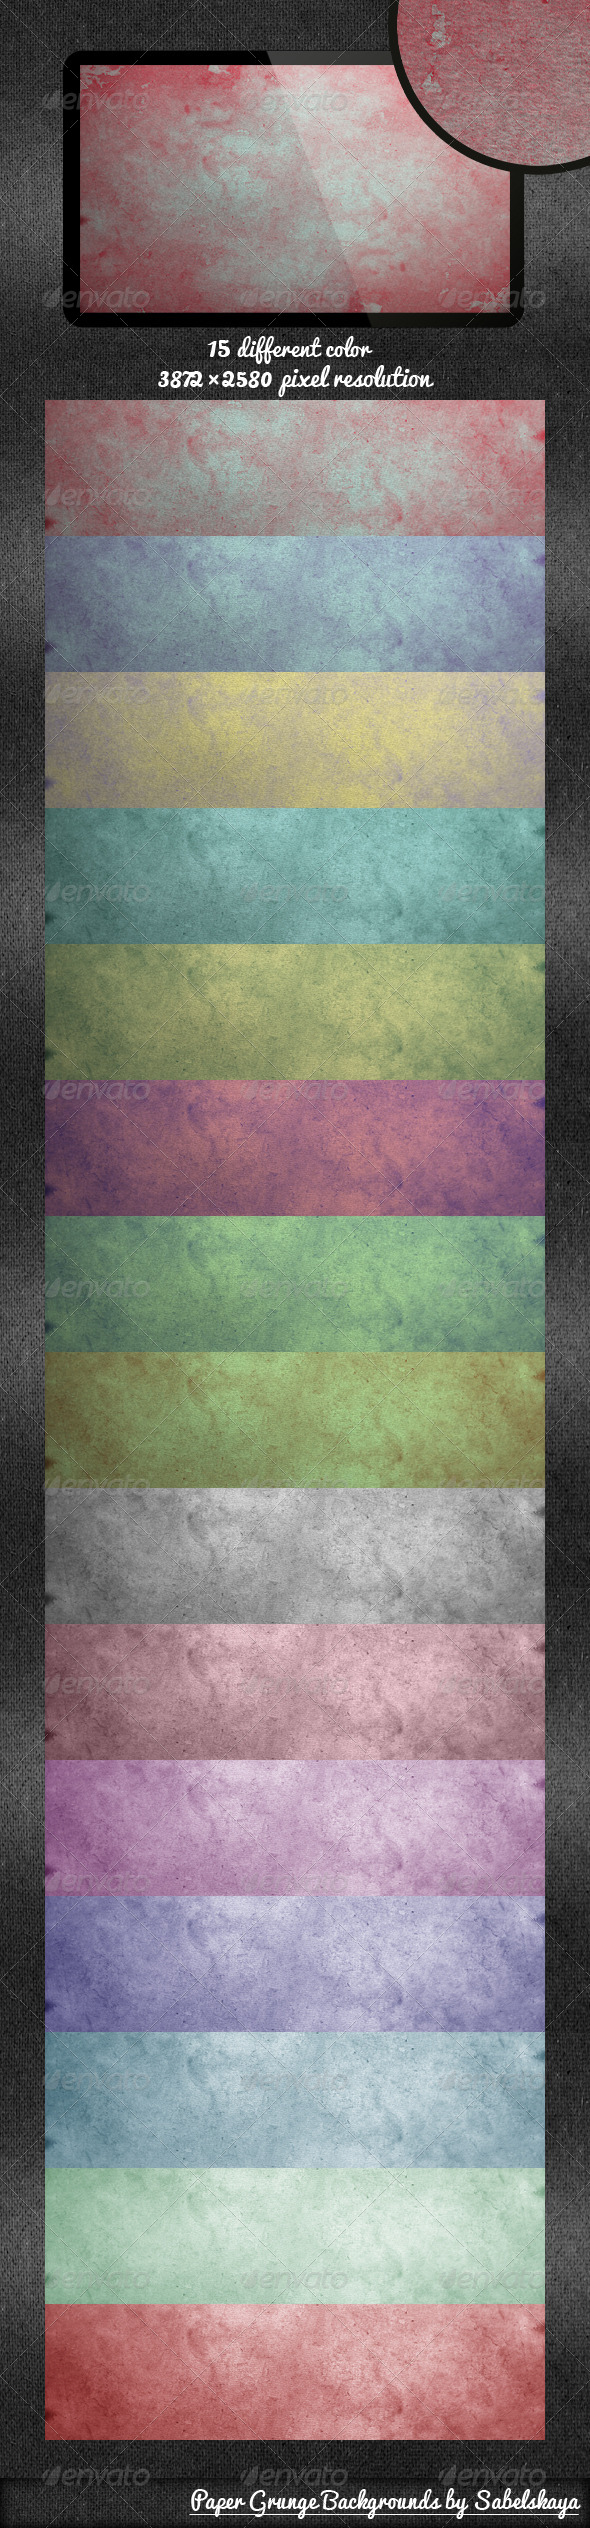 Paper Grunge Background - Patterns Backgrounds